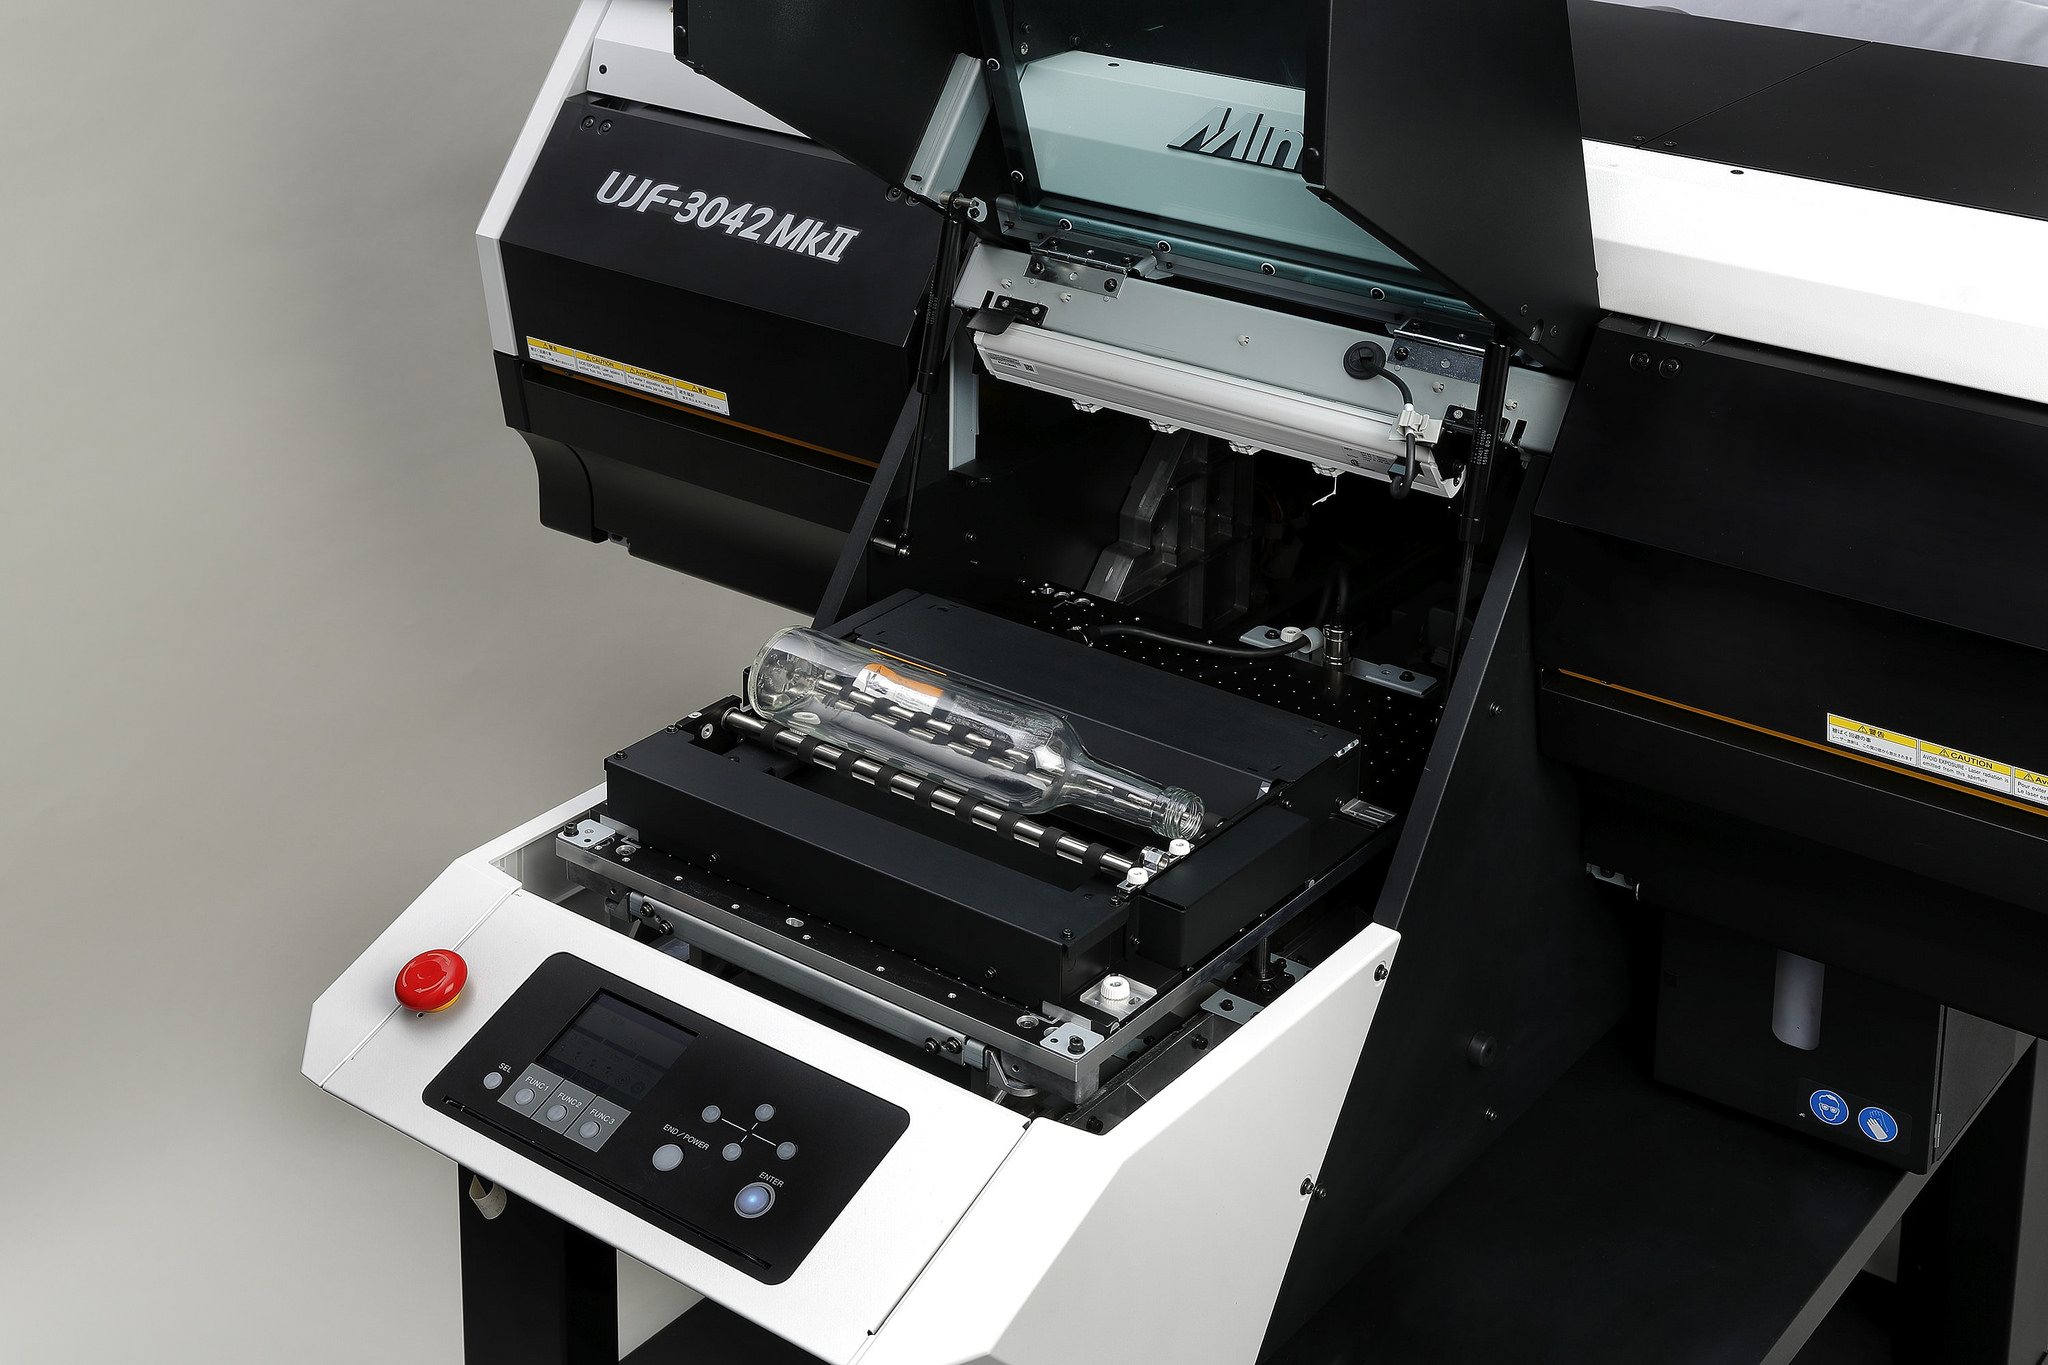 Mimaki's optional Kebab device extends the capabilities of its new UJF MkII range